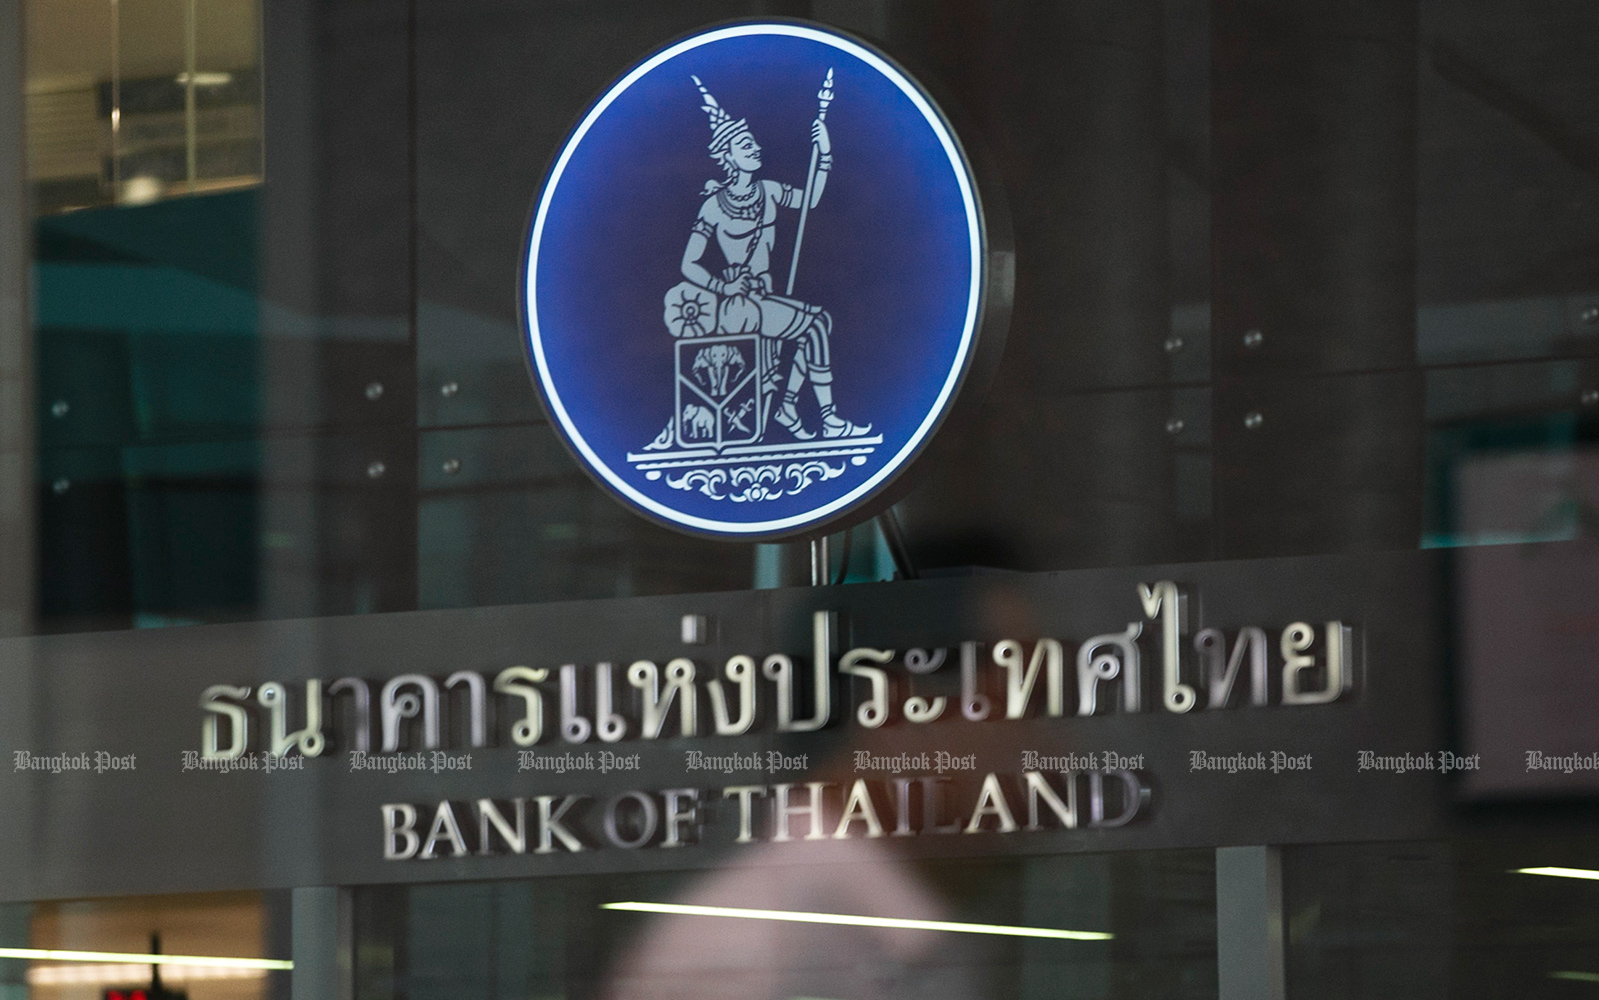 The Bank of Thailand's initial estimation has the government's new economic measures contributing less than half a percentage point of economic growth. (Bangkok Post photo)